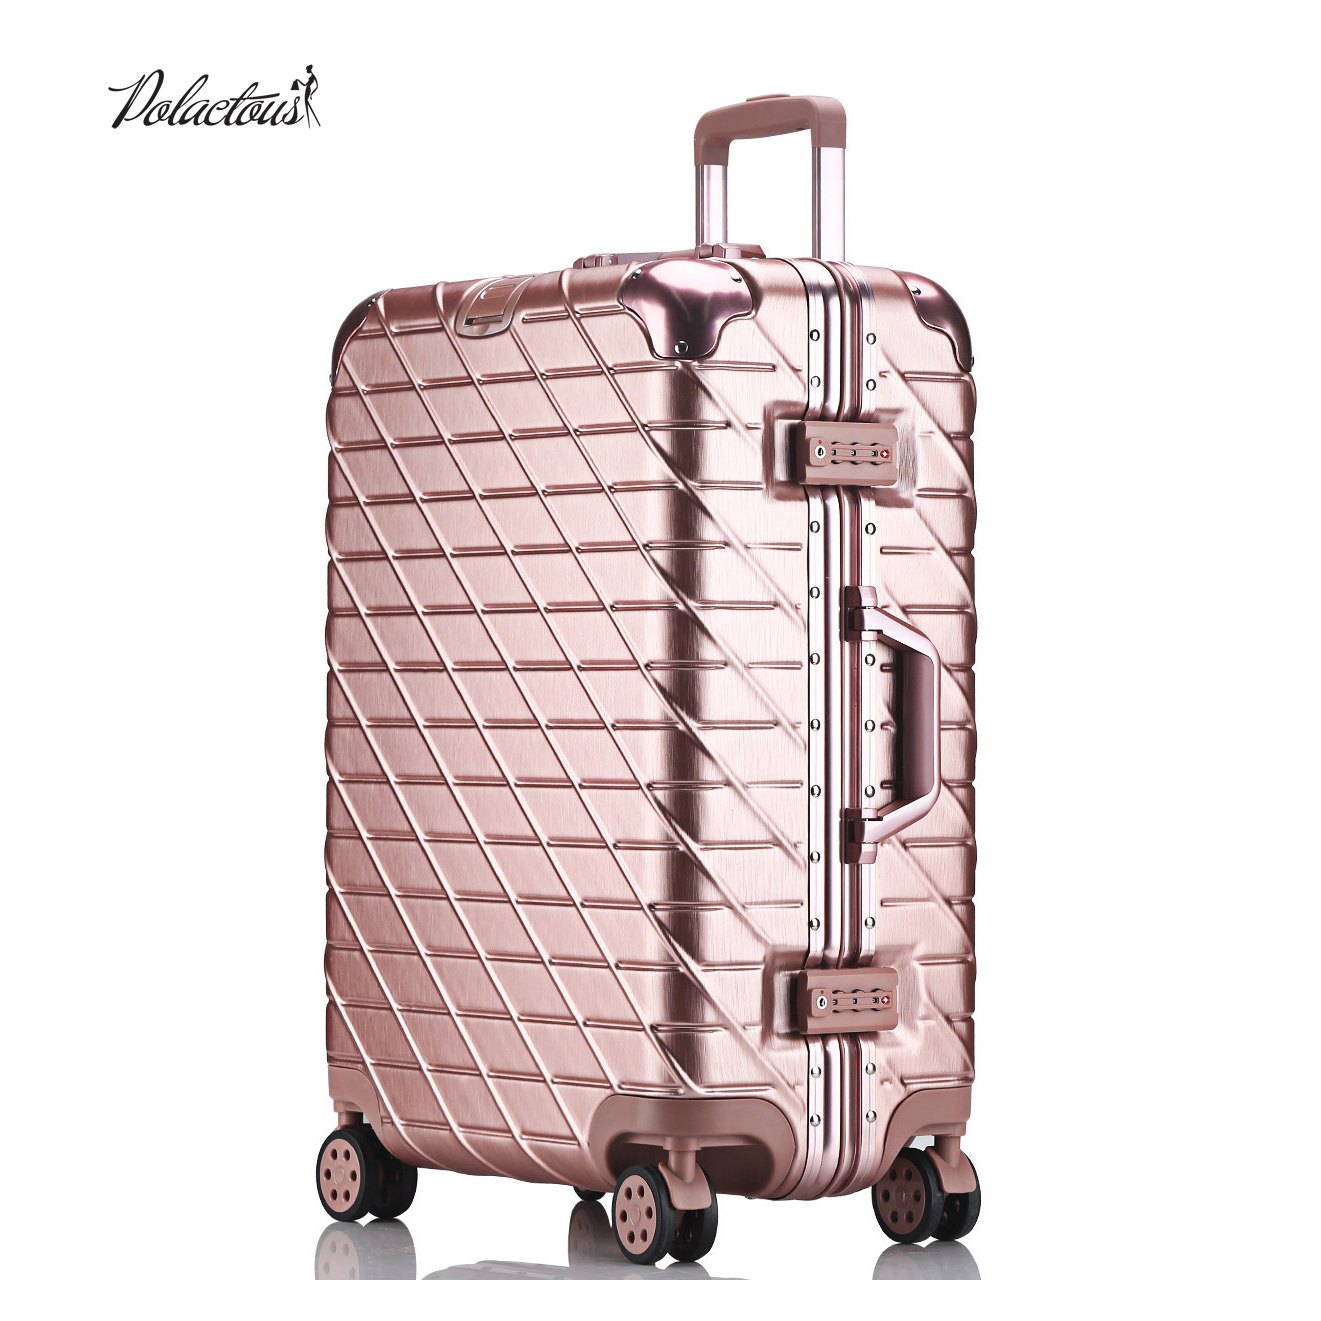 20 24 26 29 inch Aluminum frame + PC + ABS Hardside Luggage, Vintage Rolling suitcase, Nniversal wheel Password Lock Bag vintage suitcase 20 26 pu leather travel suitcase scratch resistant rolling luggage bags suitcase with tsa lock